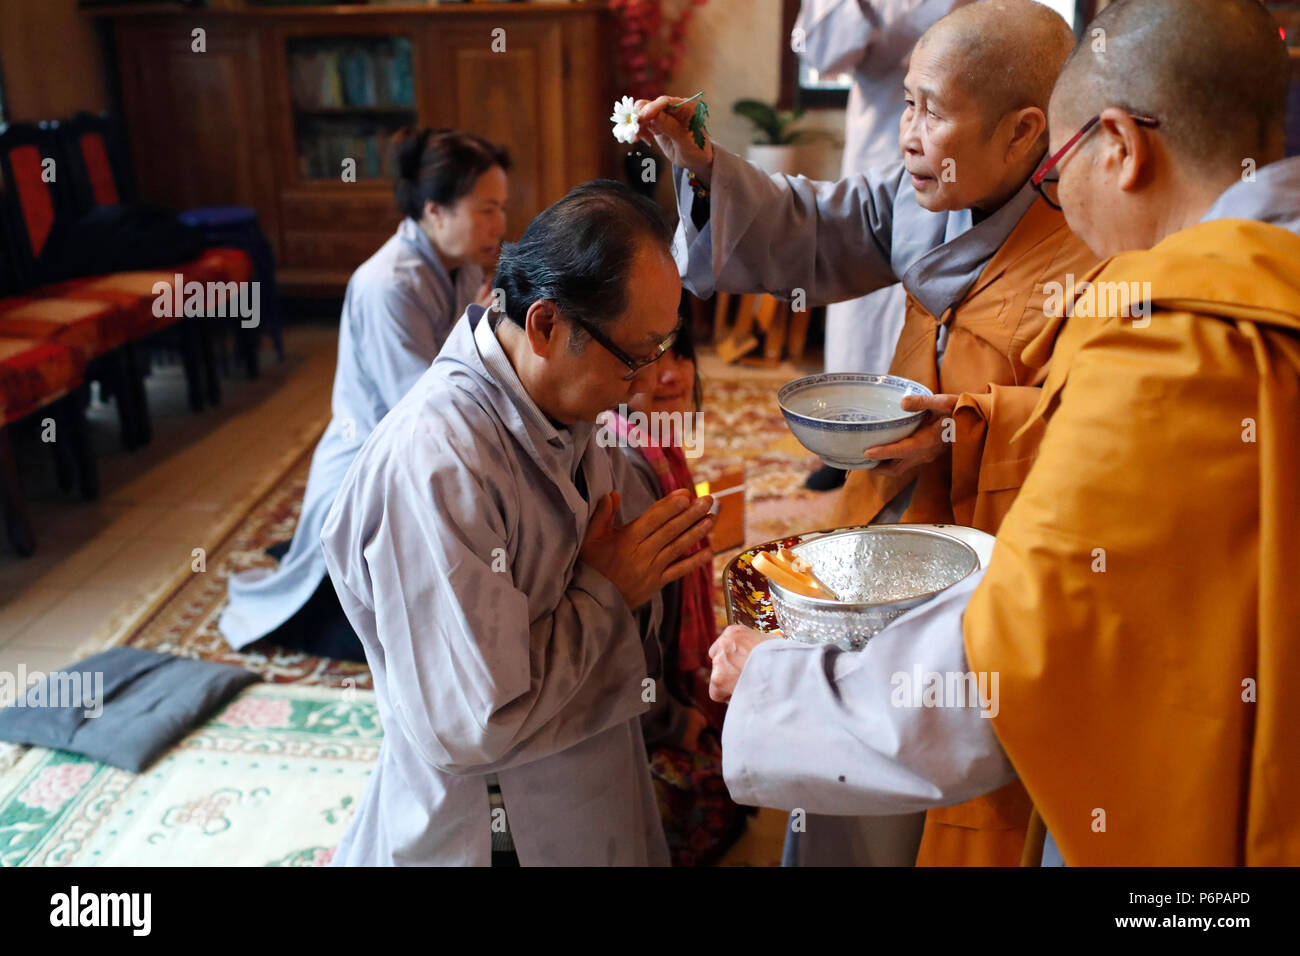 Chua Tu An Buddhist temple. Buddhist worship. Monk ordination ceremony. Saint-Pierre en Faucigny. France. - Stock Image